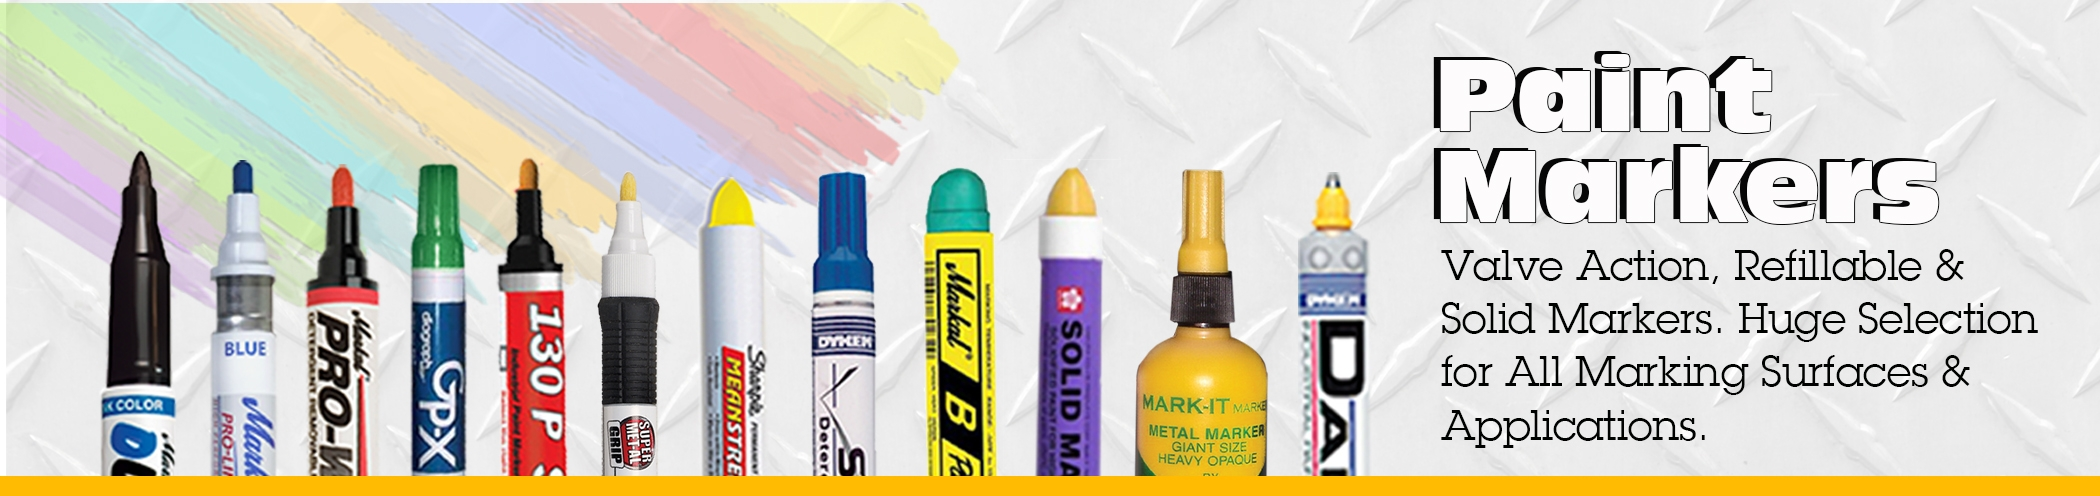 Industrial Paint Markers